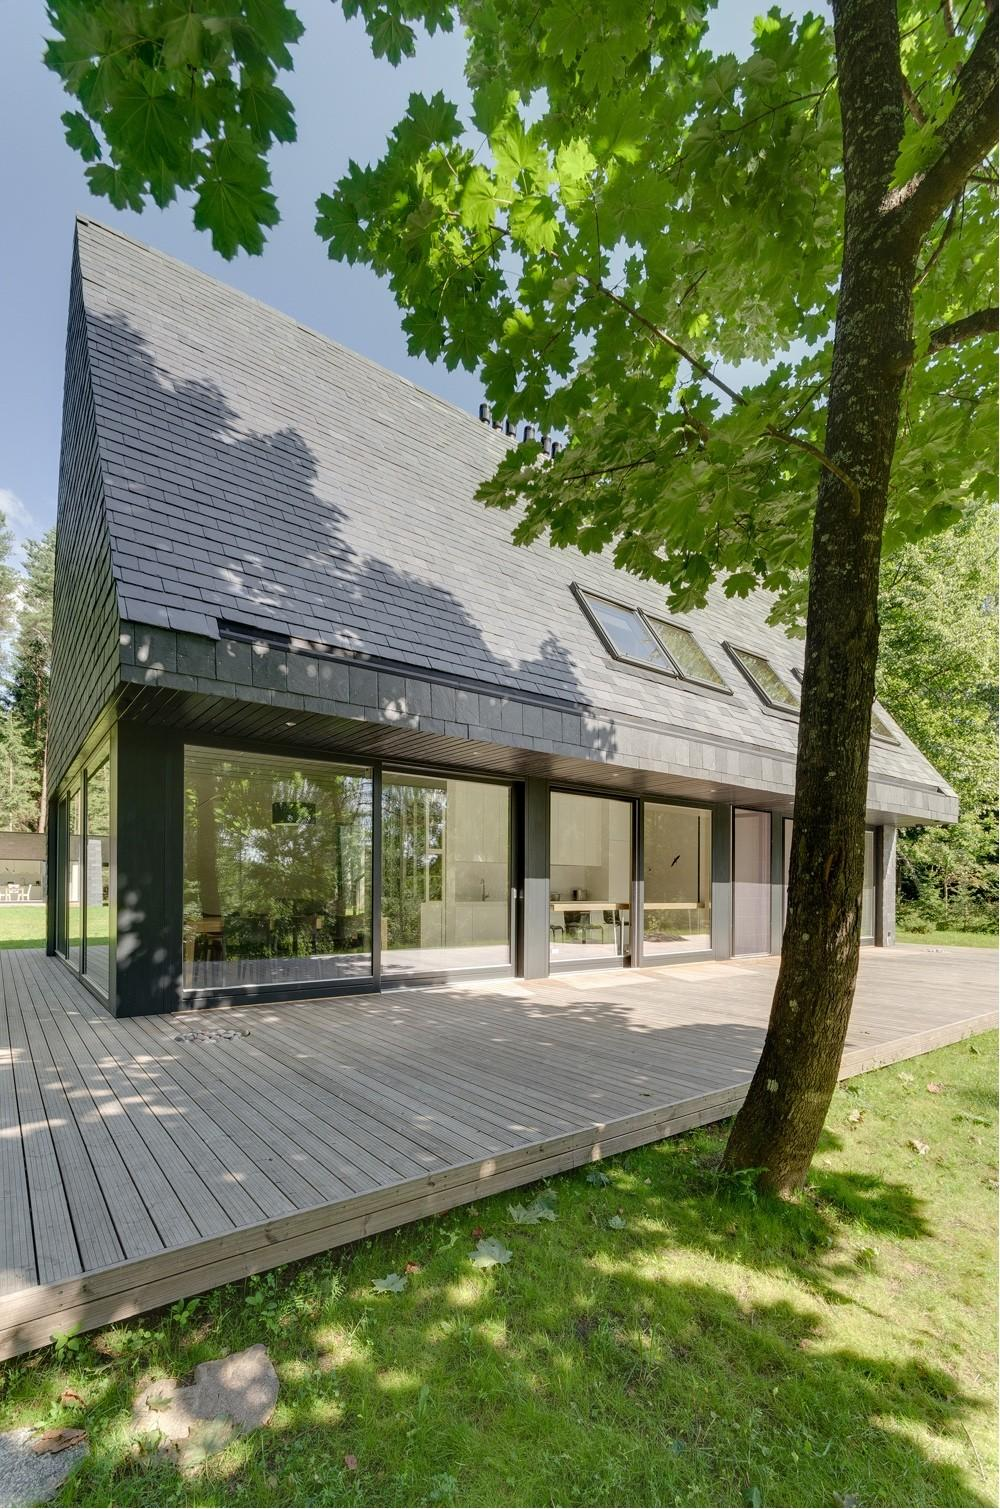 Back Vogue Homes Steeply Pitched Roofs